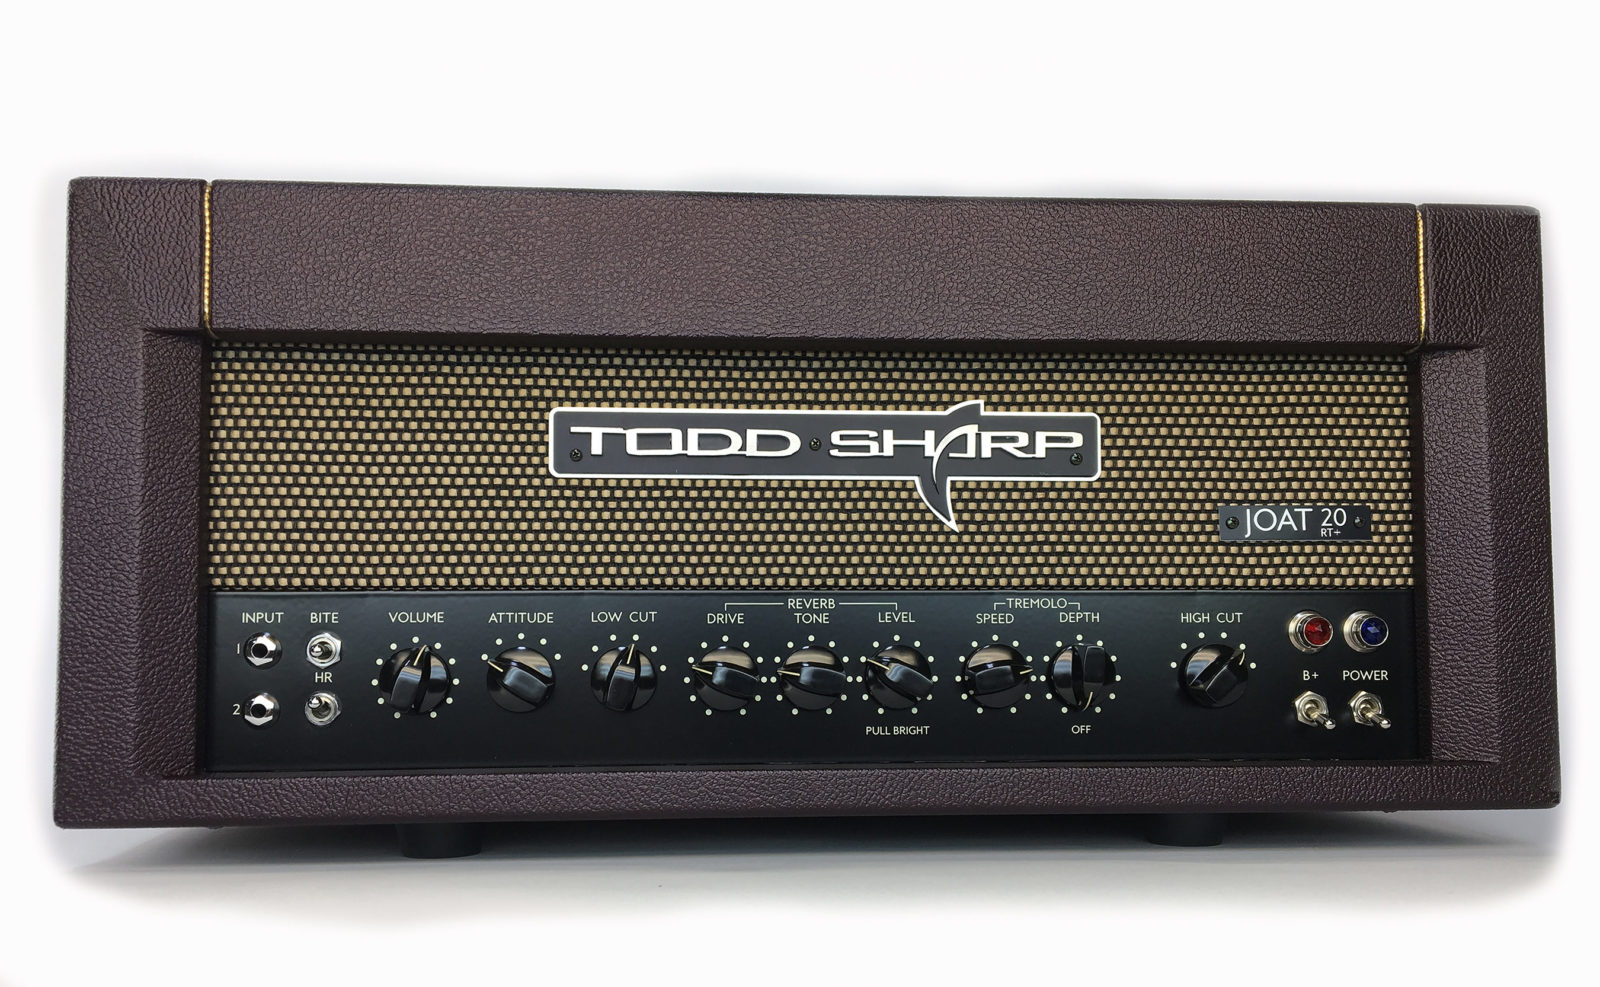 Todd Sharp Amplifiers introduces RT+ models at LA Amp Show